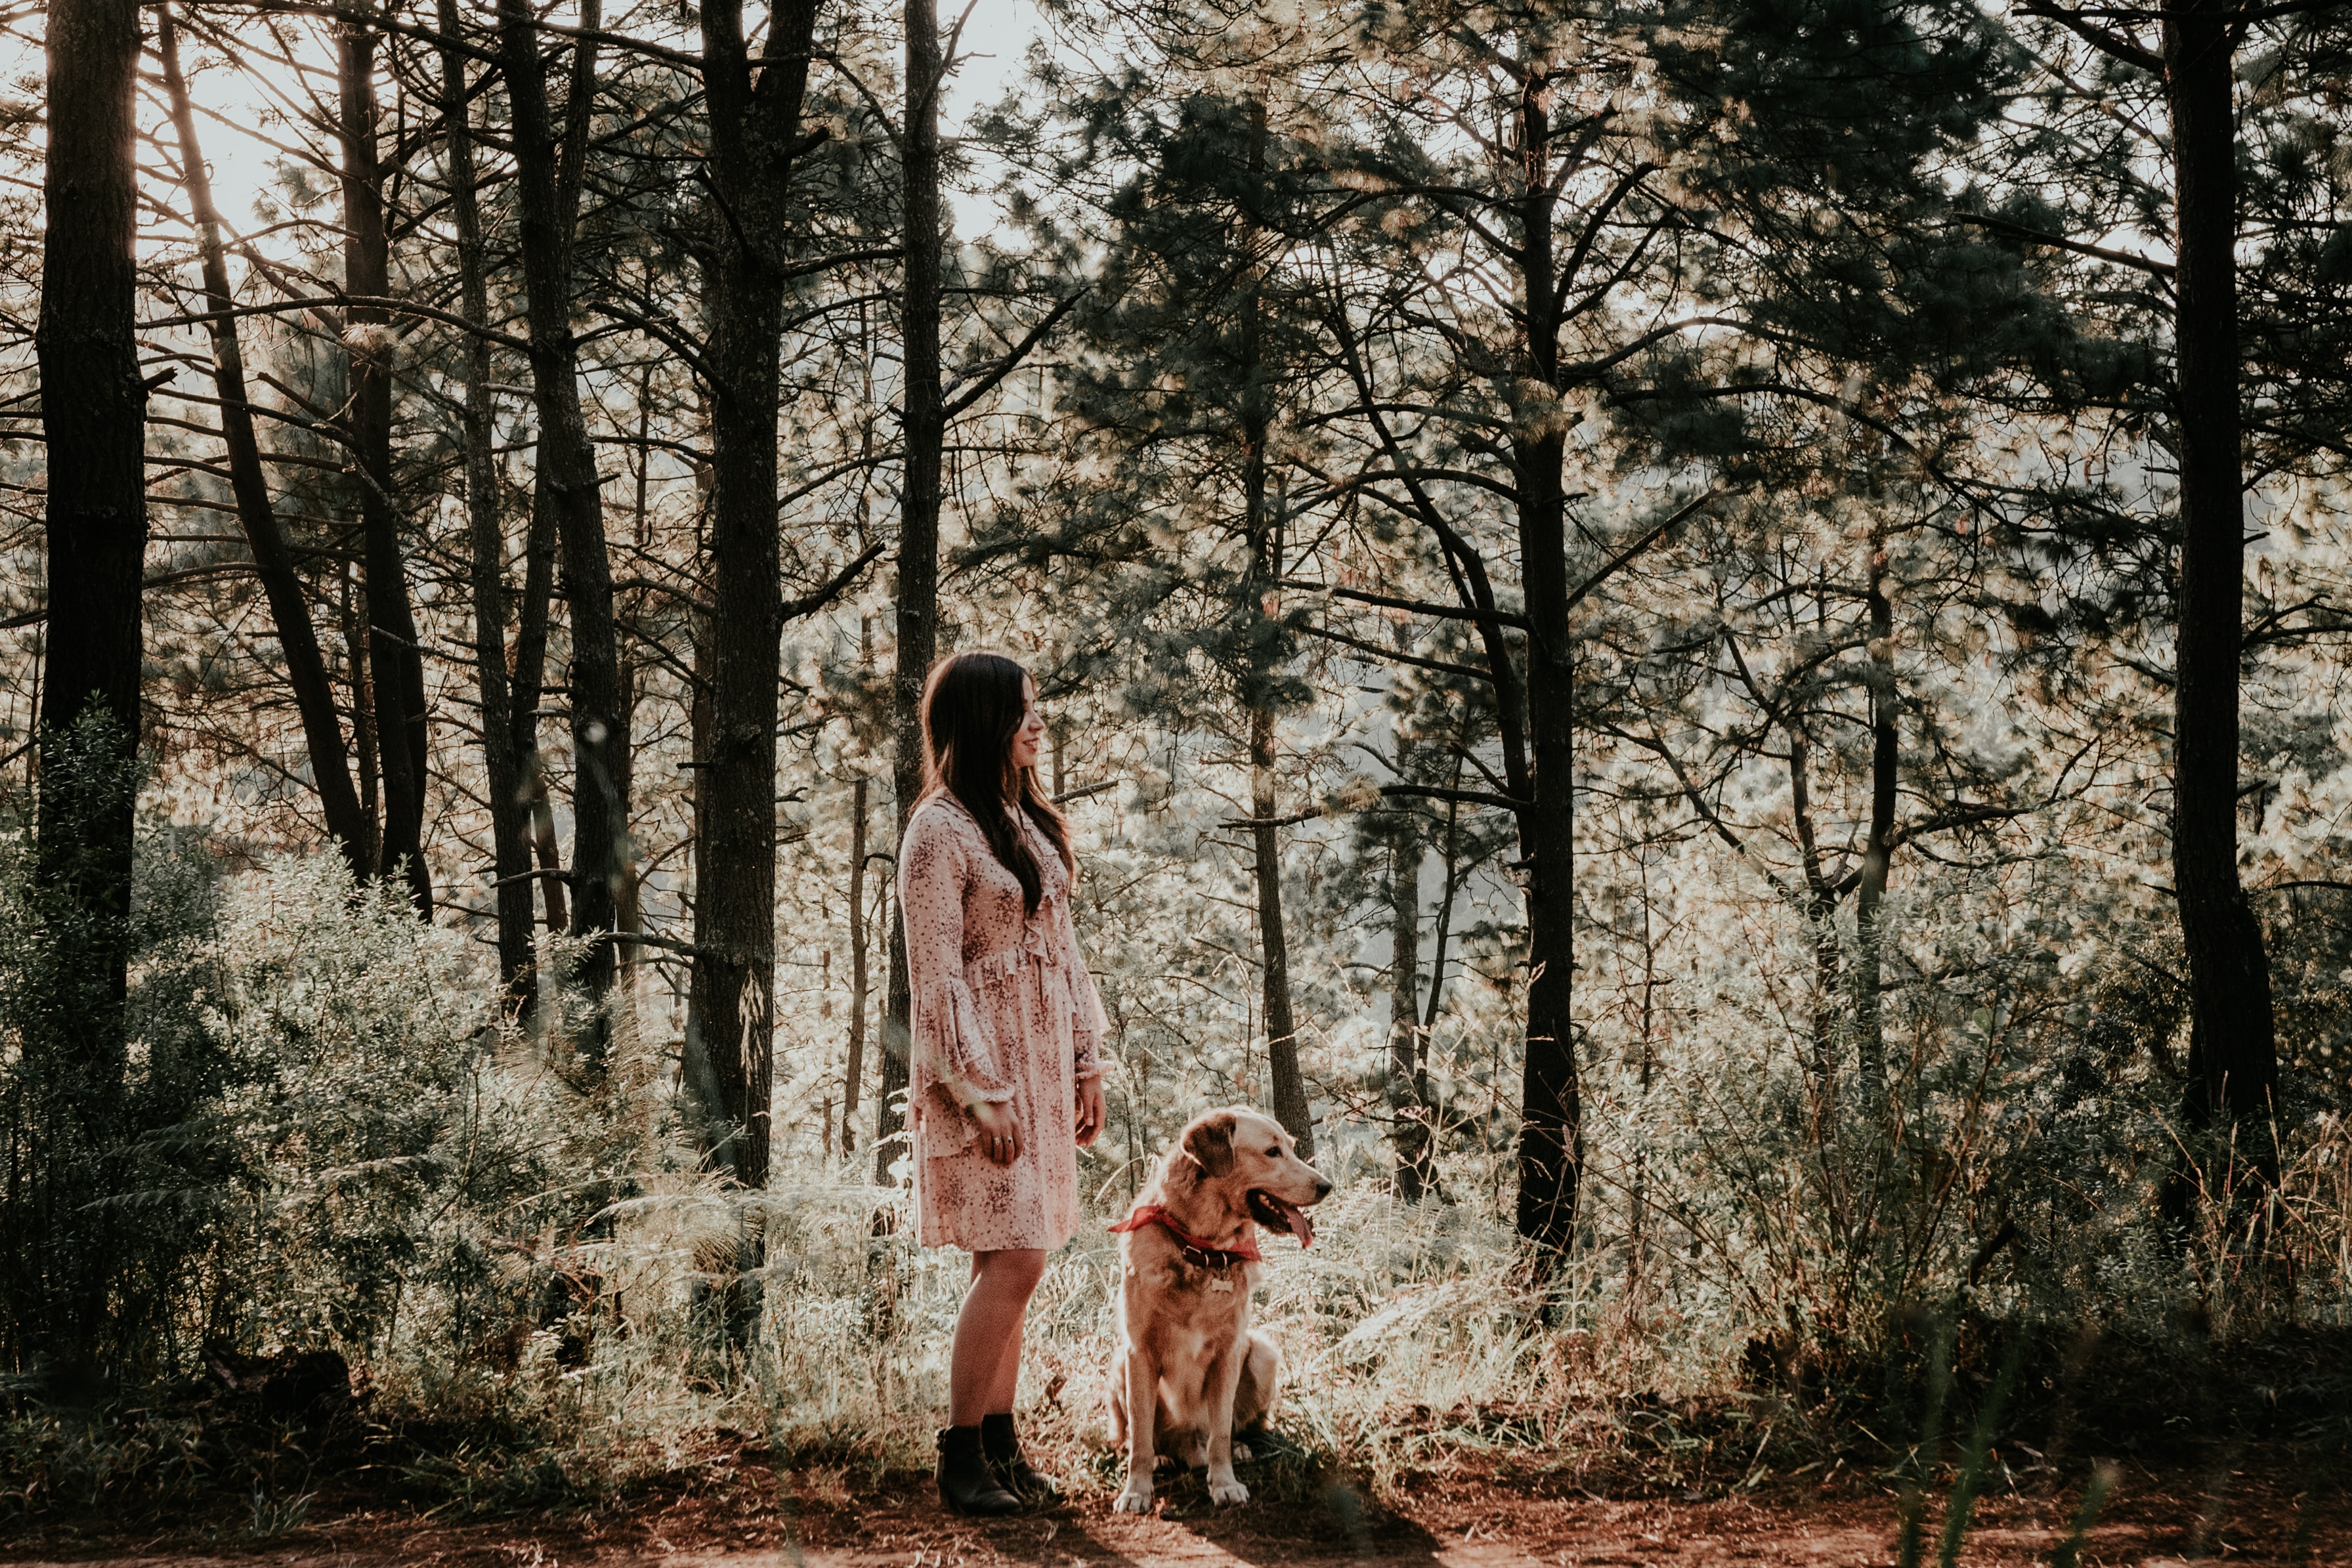 woman standing near brown dog under shade of trees during daytime